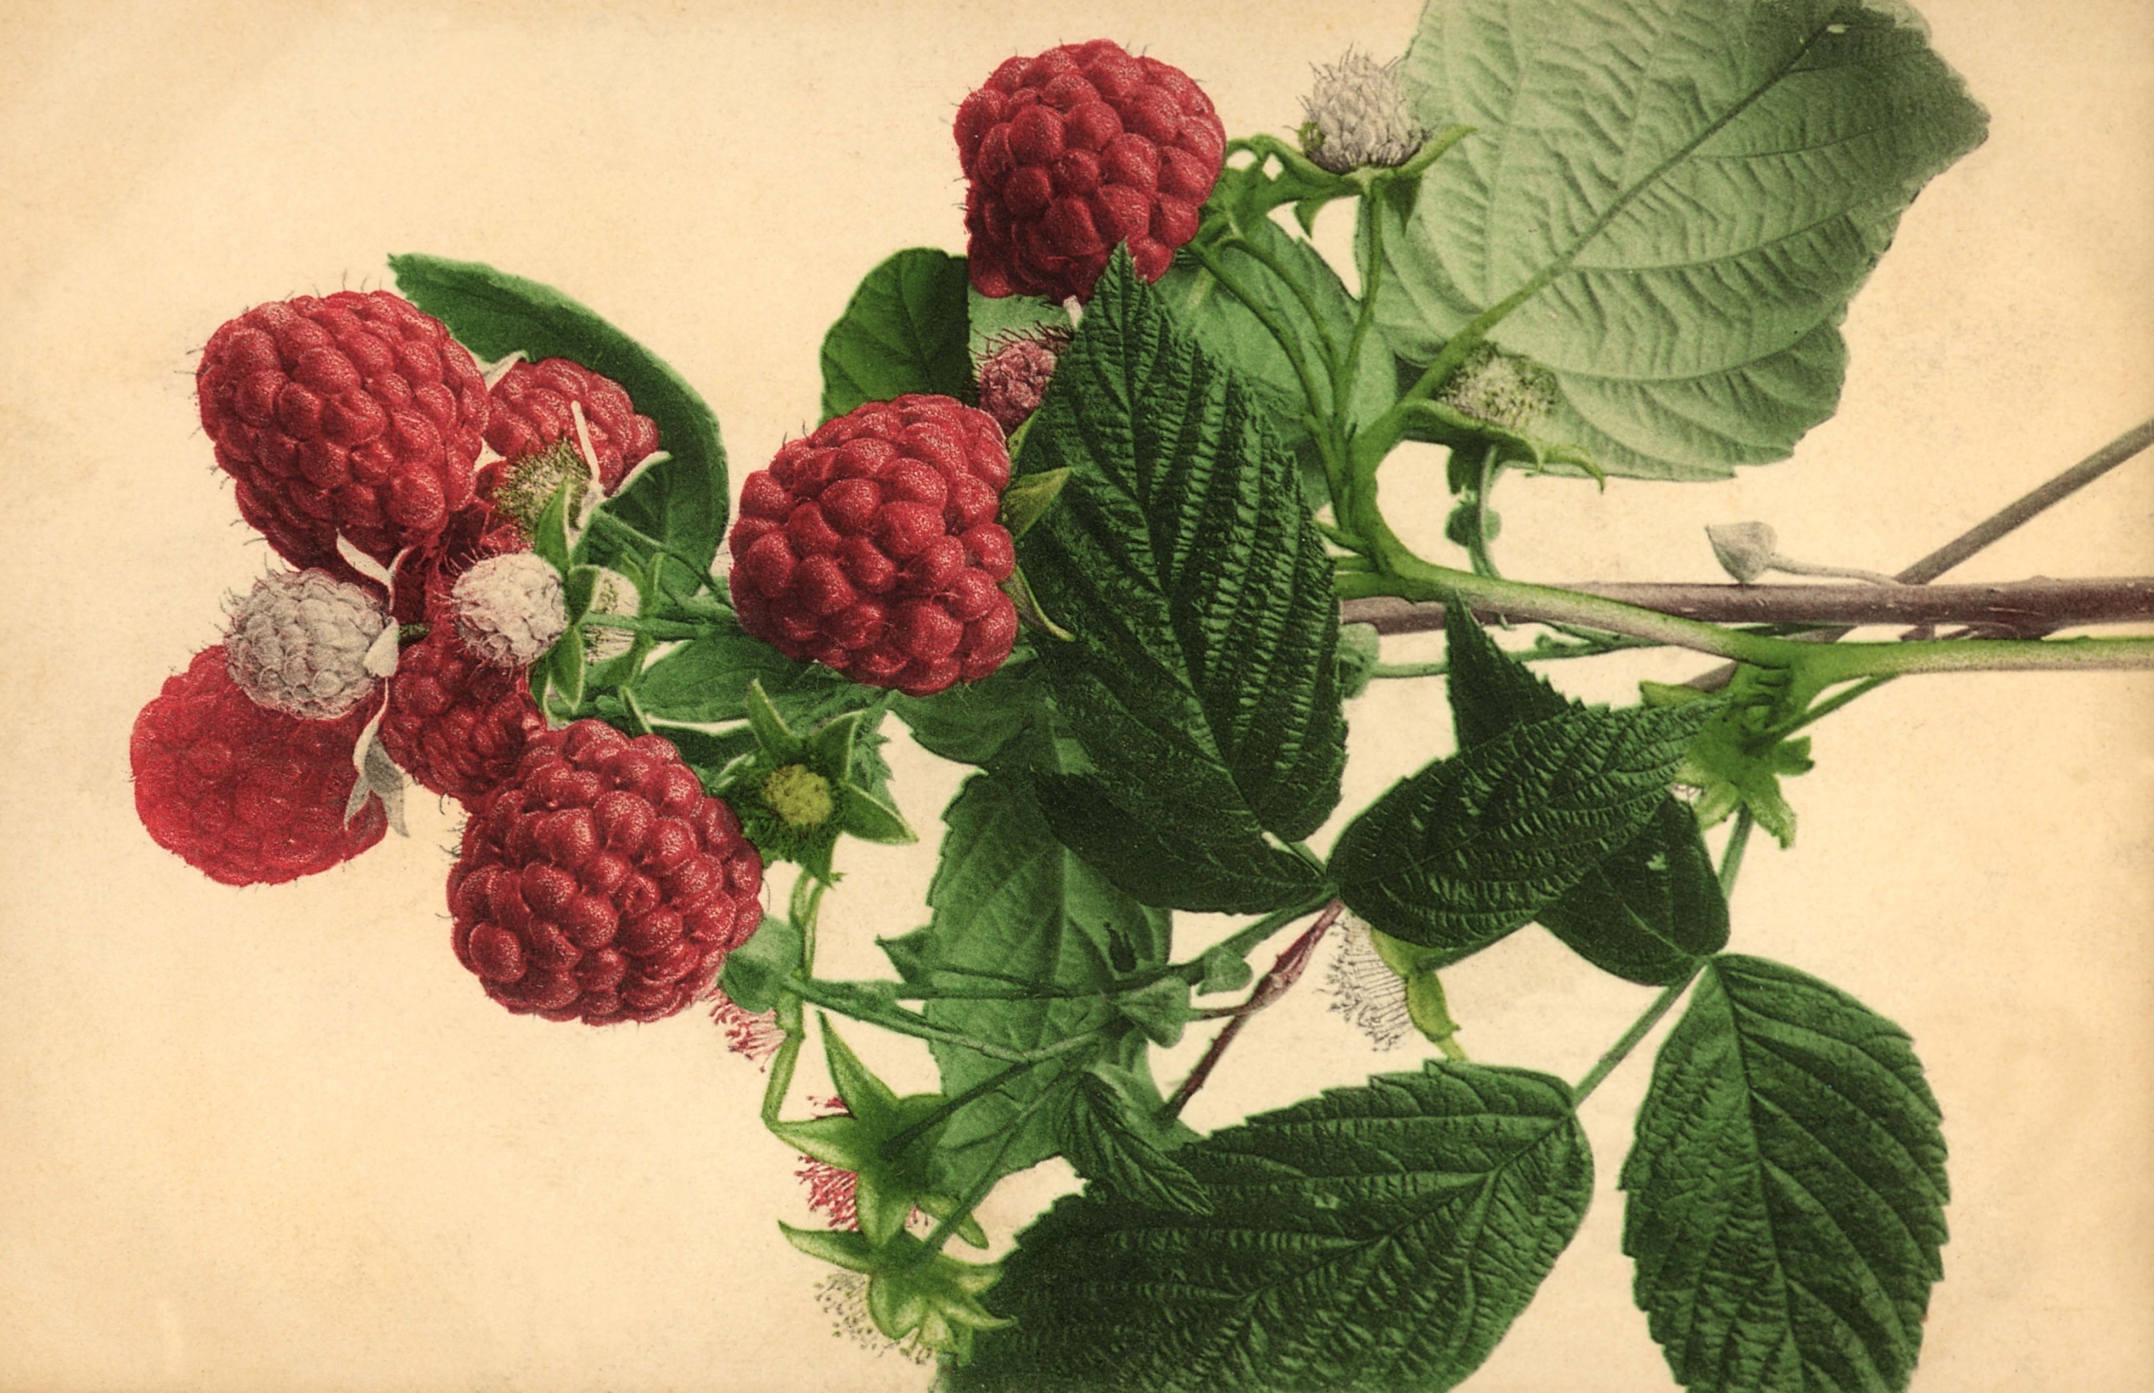 Raspberries grow both on bushes and vines called canes.